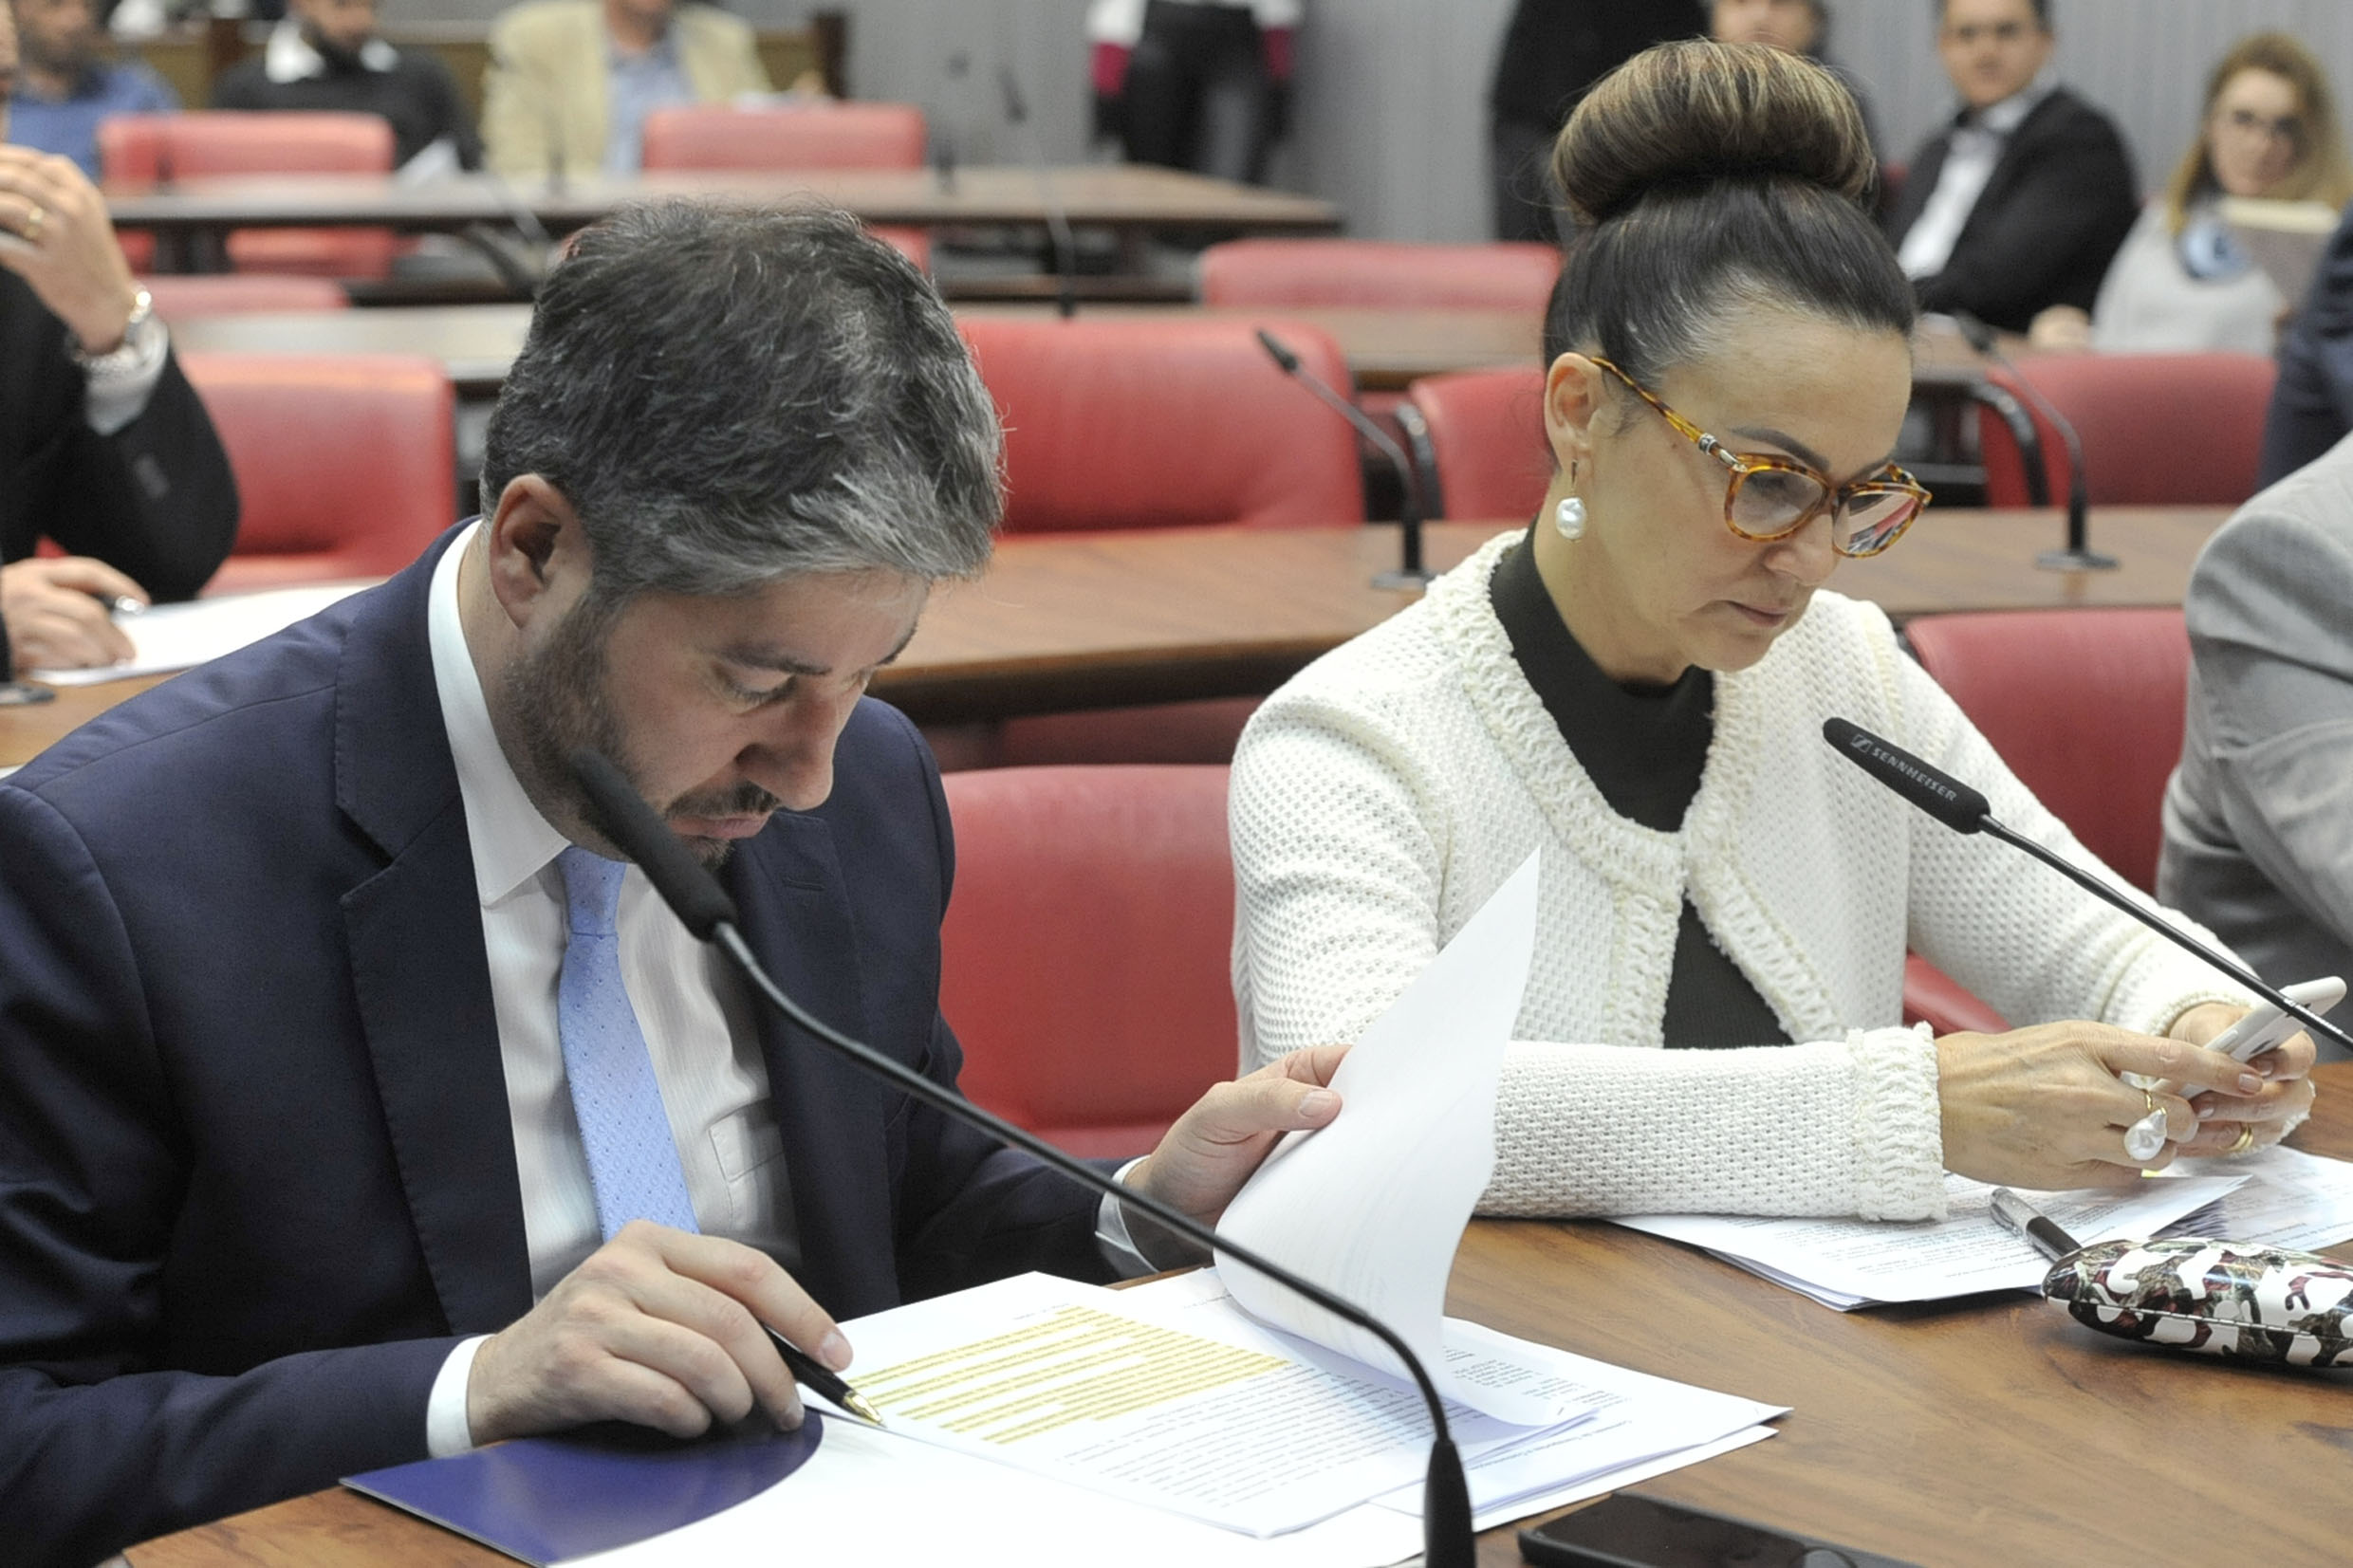 Fernando Cury e Analice Fernandes<a style='float:right' href='https://www3.al.sp.gov.br/repositorio/noticia/N-06-2019/fg235746.jpg' target=_blank><img src='/_img/material-file-download-white.png' width='14px' alt='Clique para baixar a imagem'></a>